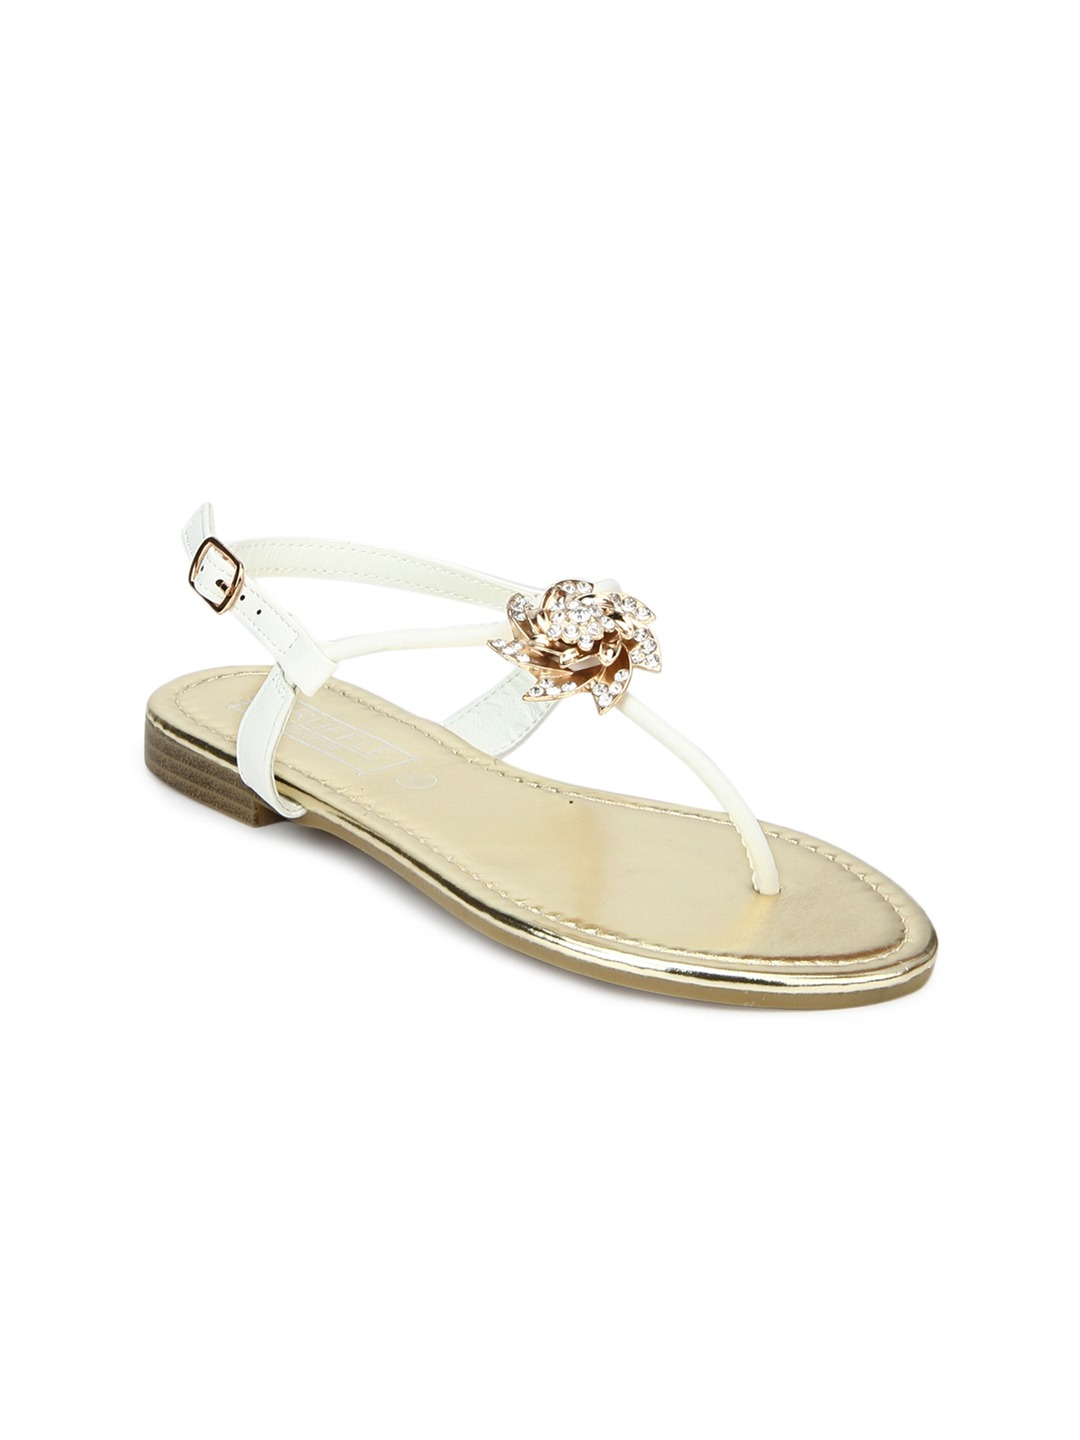 White Solid T-Strap Flats